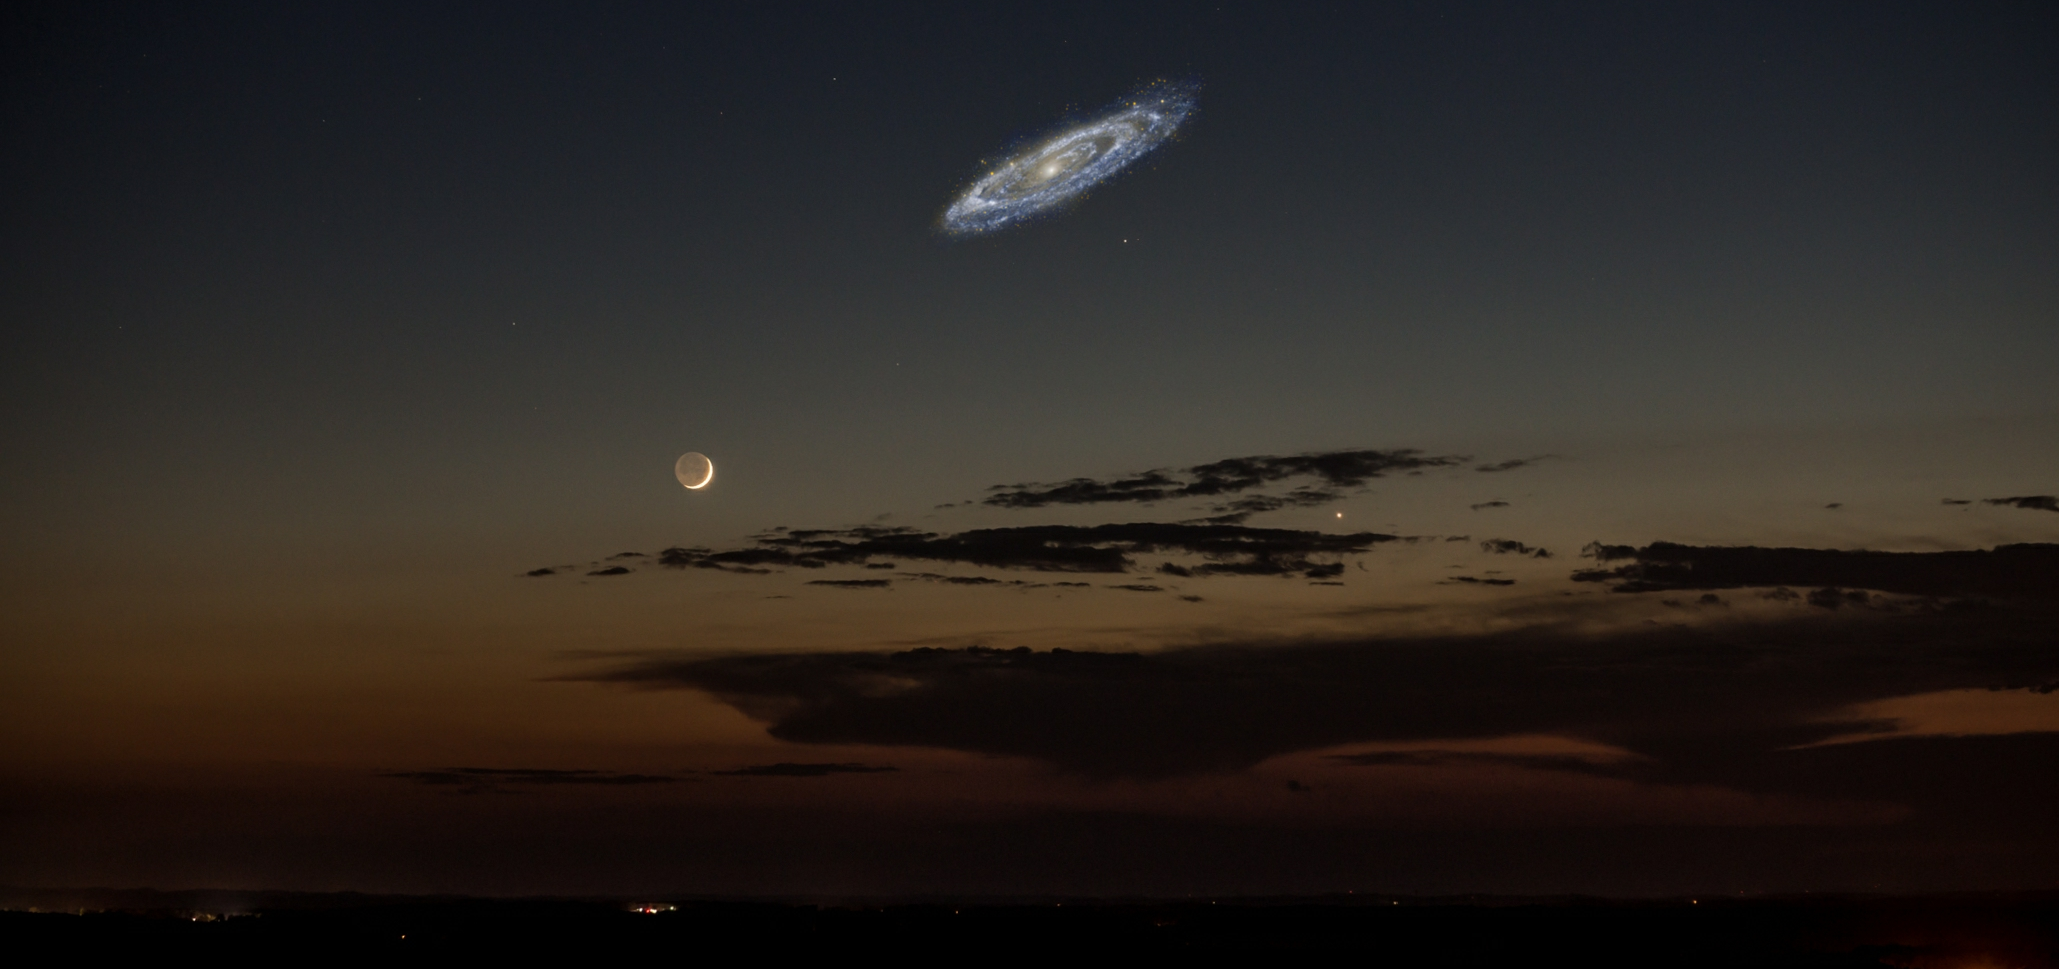 If the Andromeda Galaxy were much much brighter than it is, it would look about like this in our night sky. It's the collective luminosity of all those billions of stars that let you make out a faint murky cloudy blob of light at 2.5 million light years. In about 4 billion years, the Milky Way will collide with this galaxy.